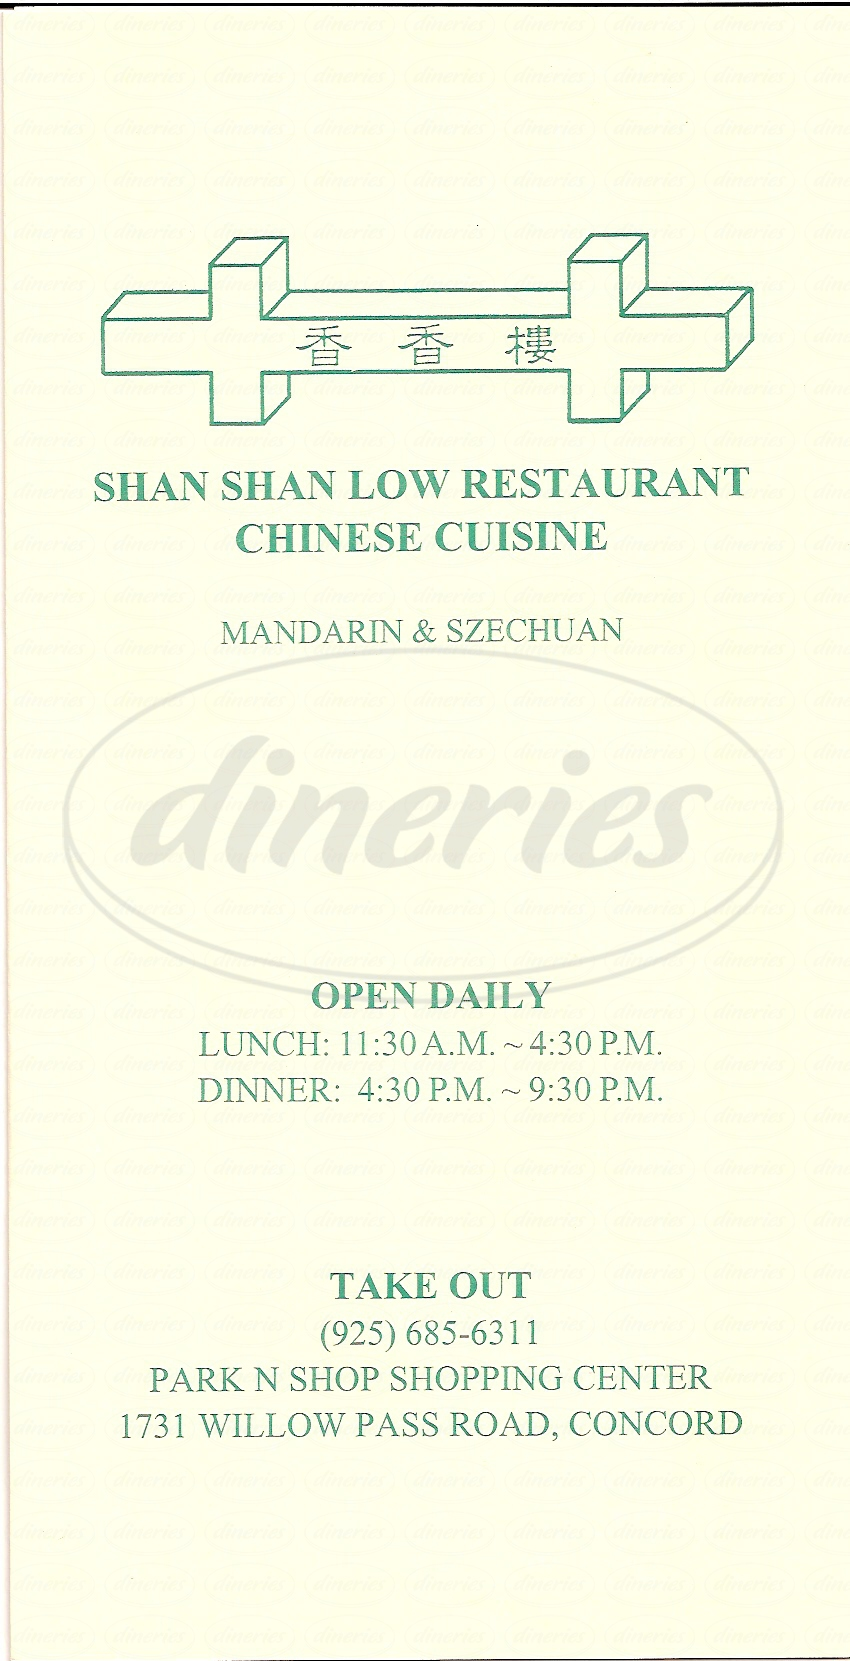 menu for Shan Shan Low Restaurant